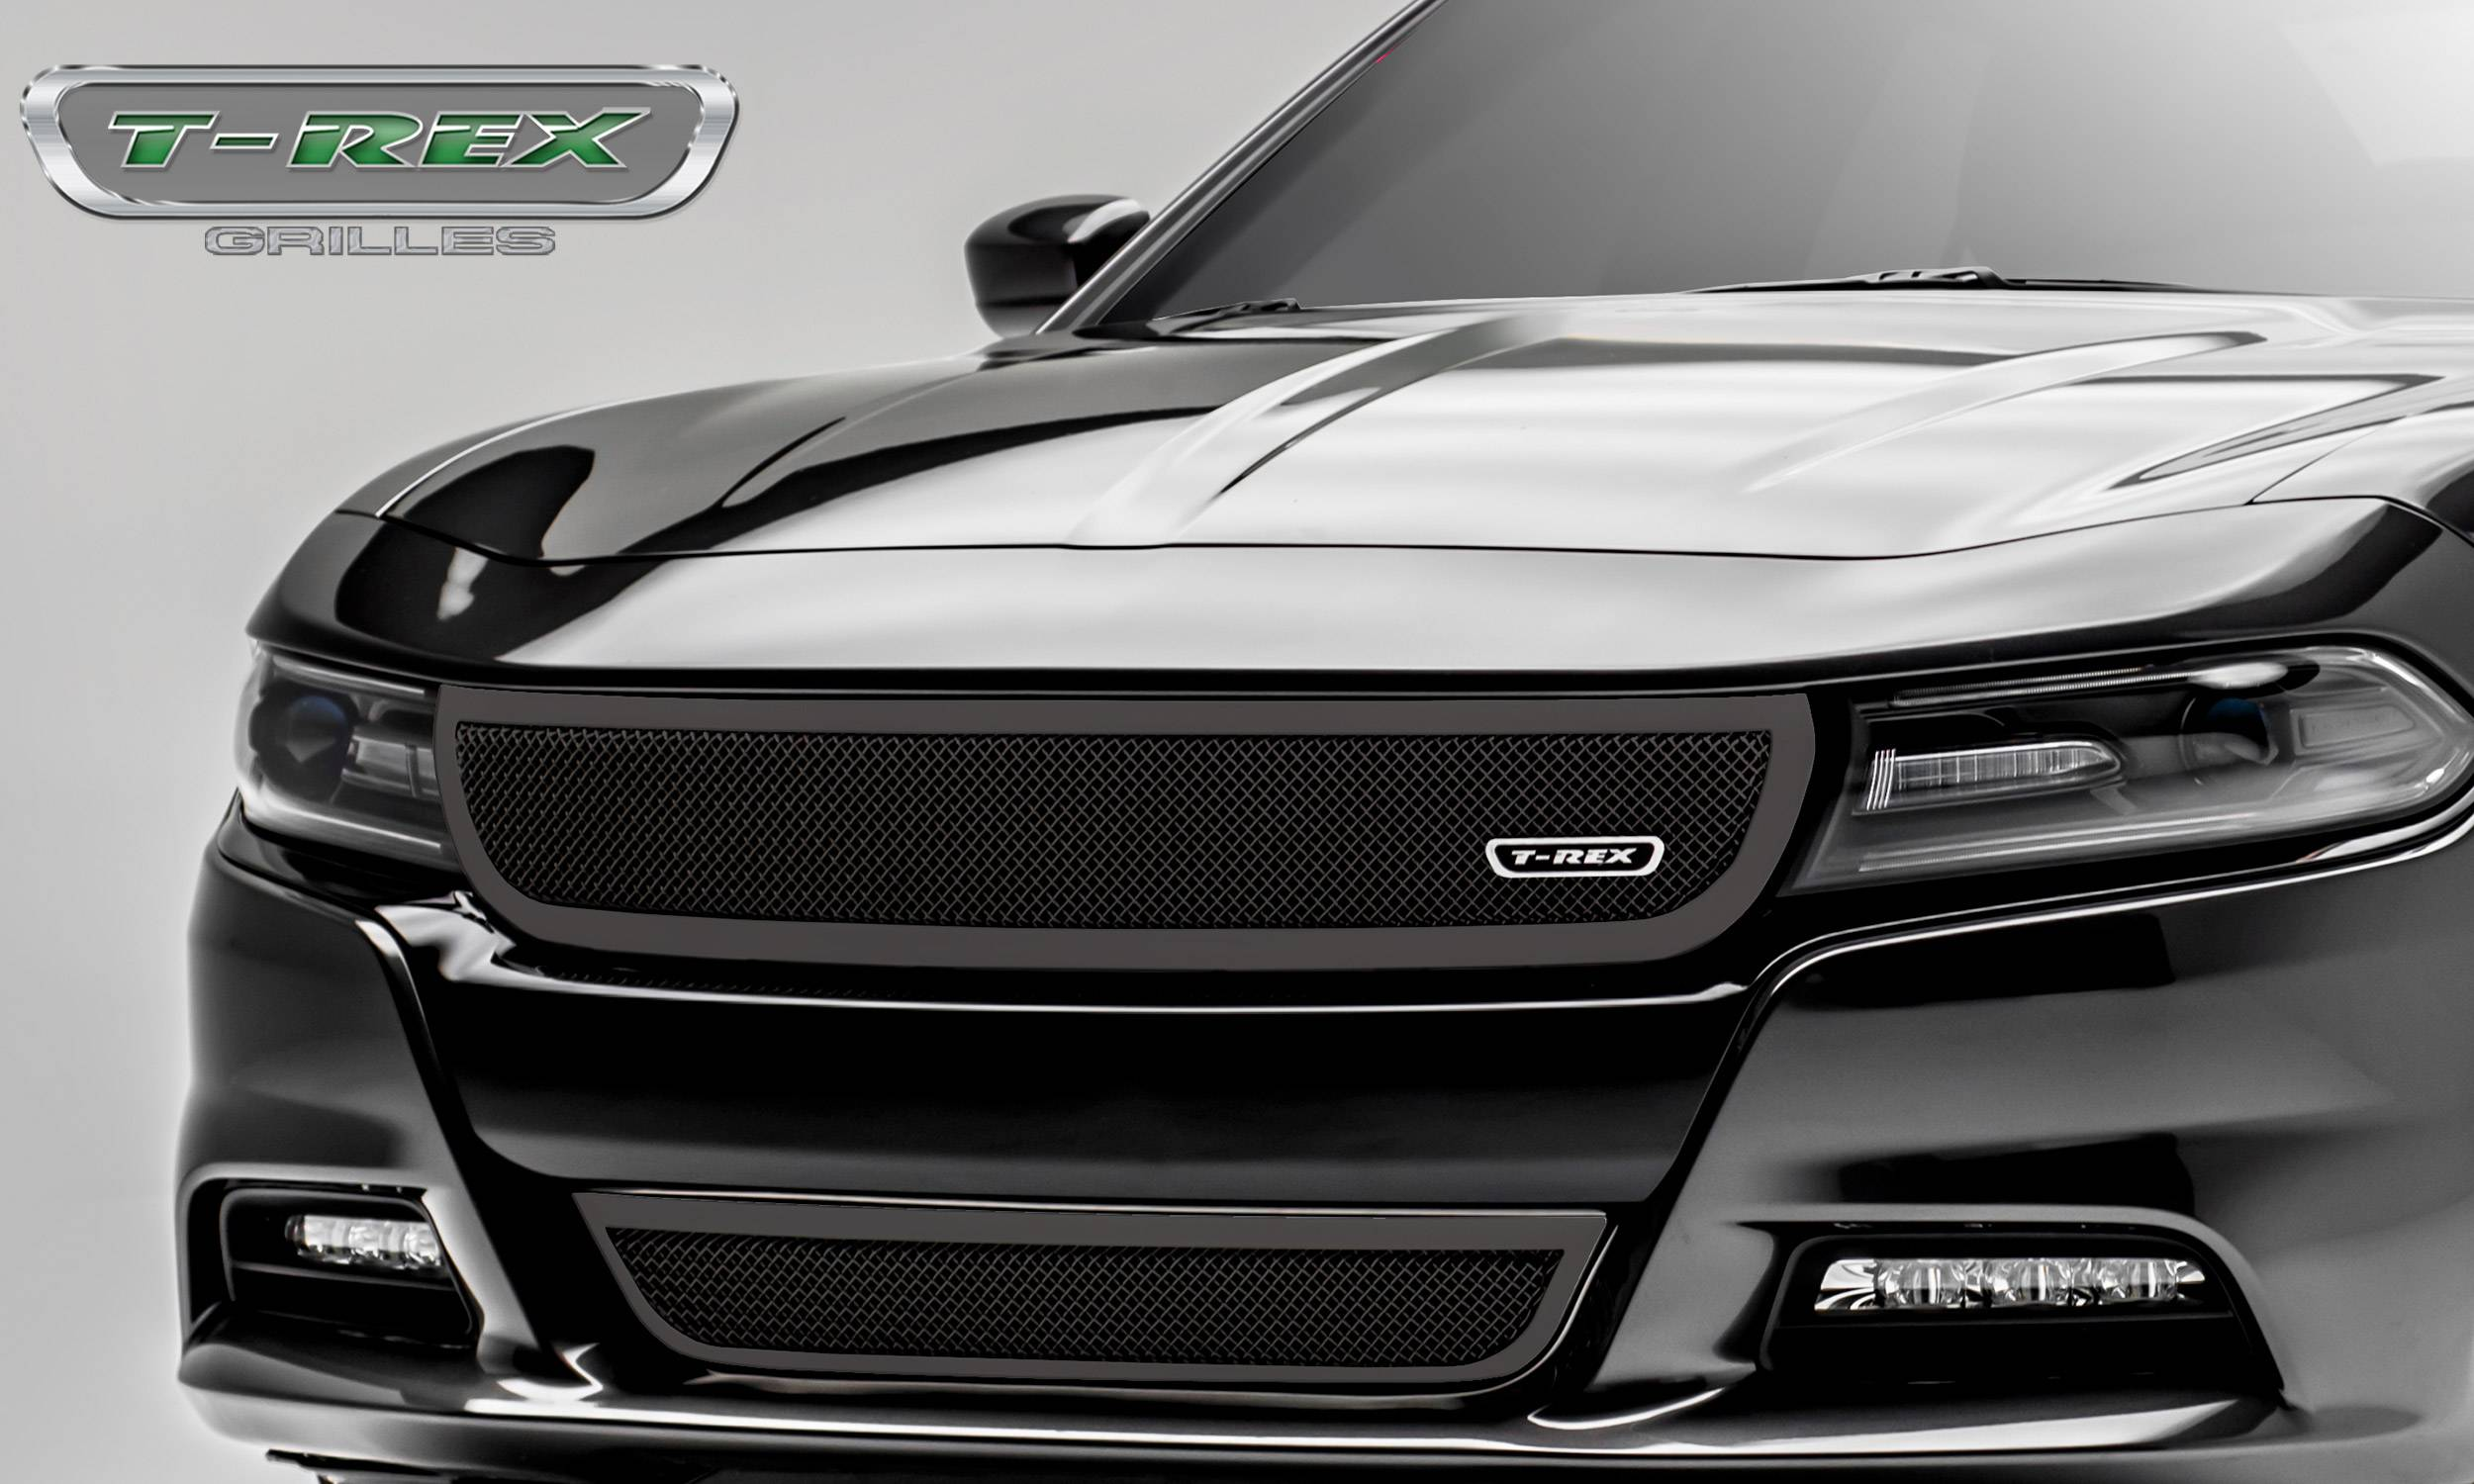 T-REX Grilles - Dodge Charger - Upper Class - 1 Pc Main Grille - Overlay/Insert - Black Powder Coated - Pt # 51480